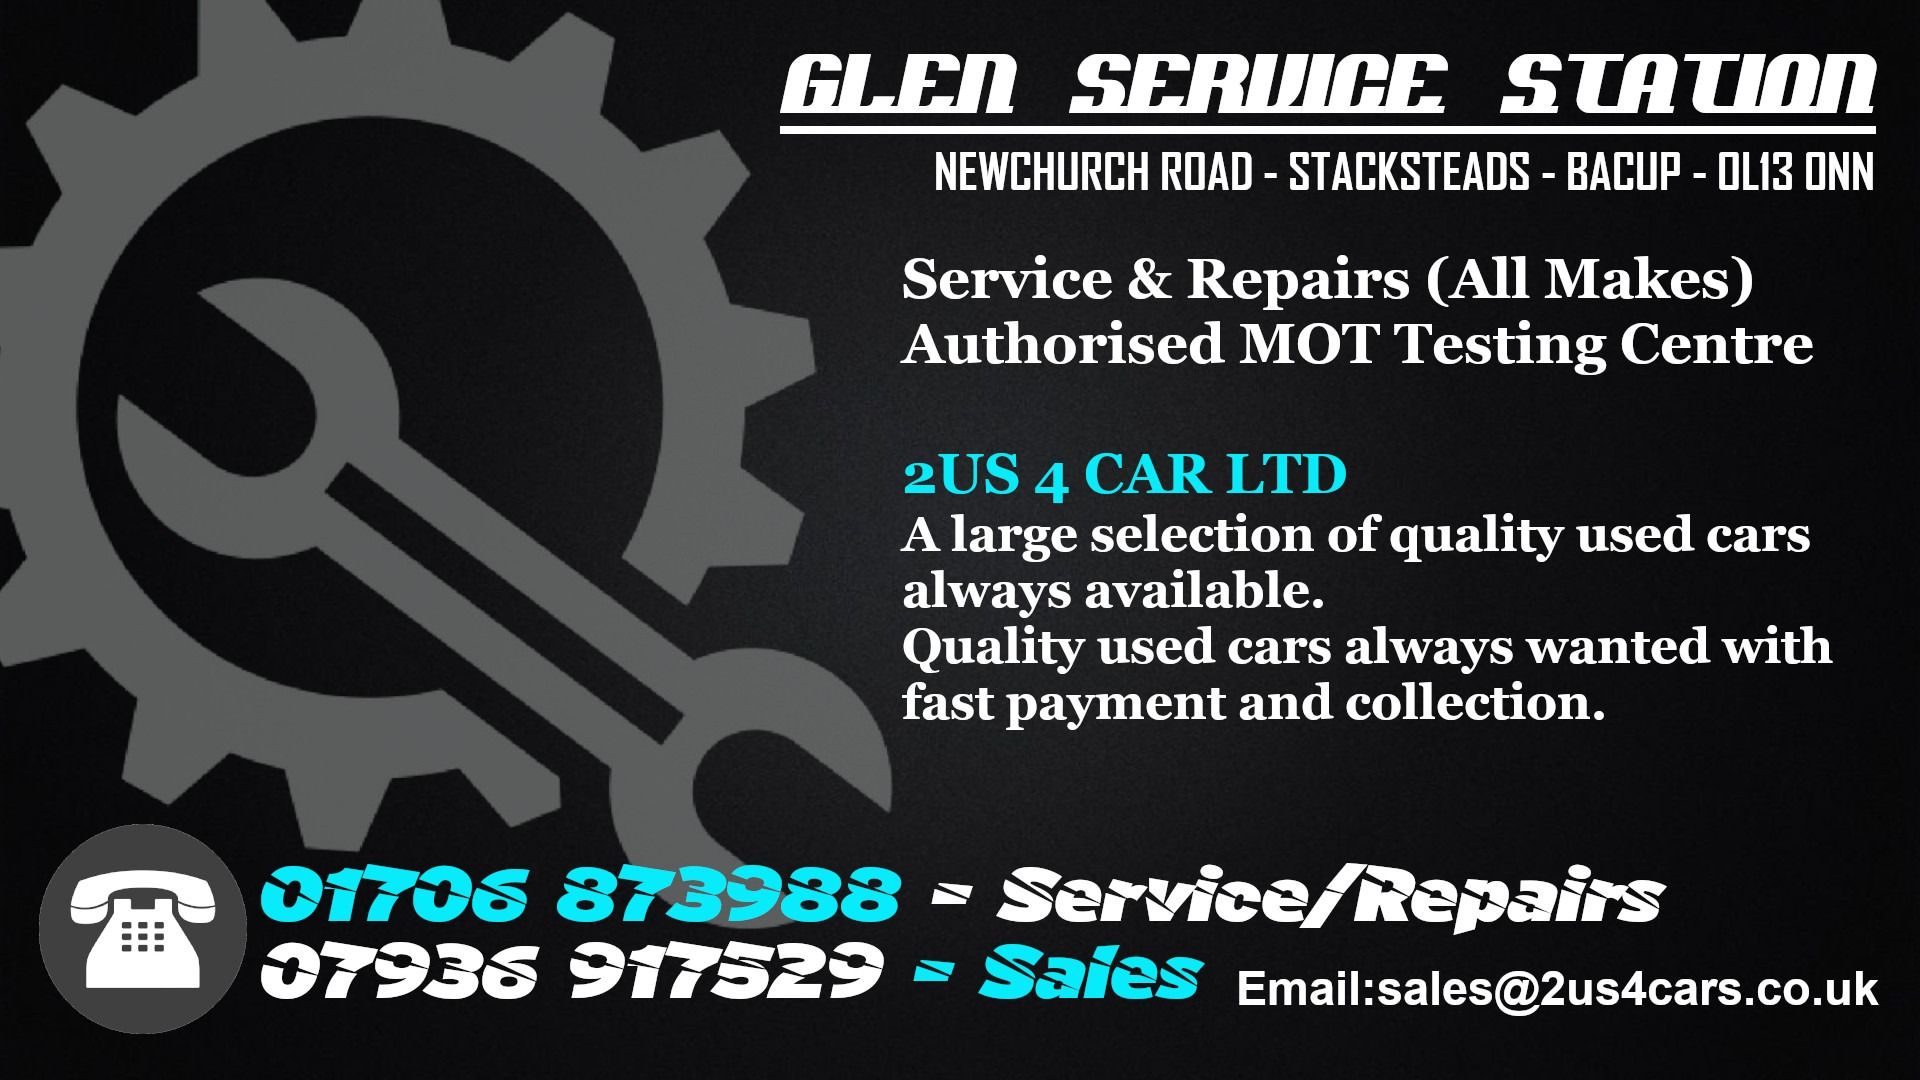 GlenServices_edited